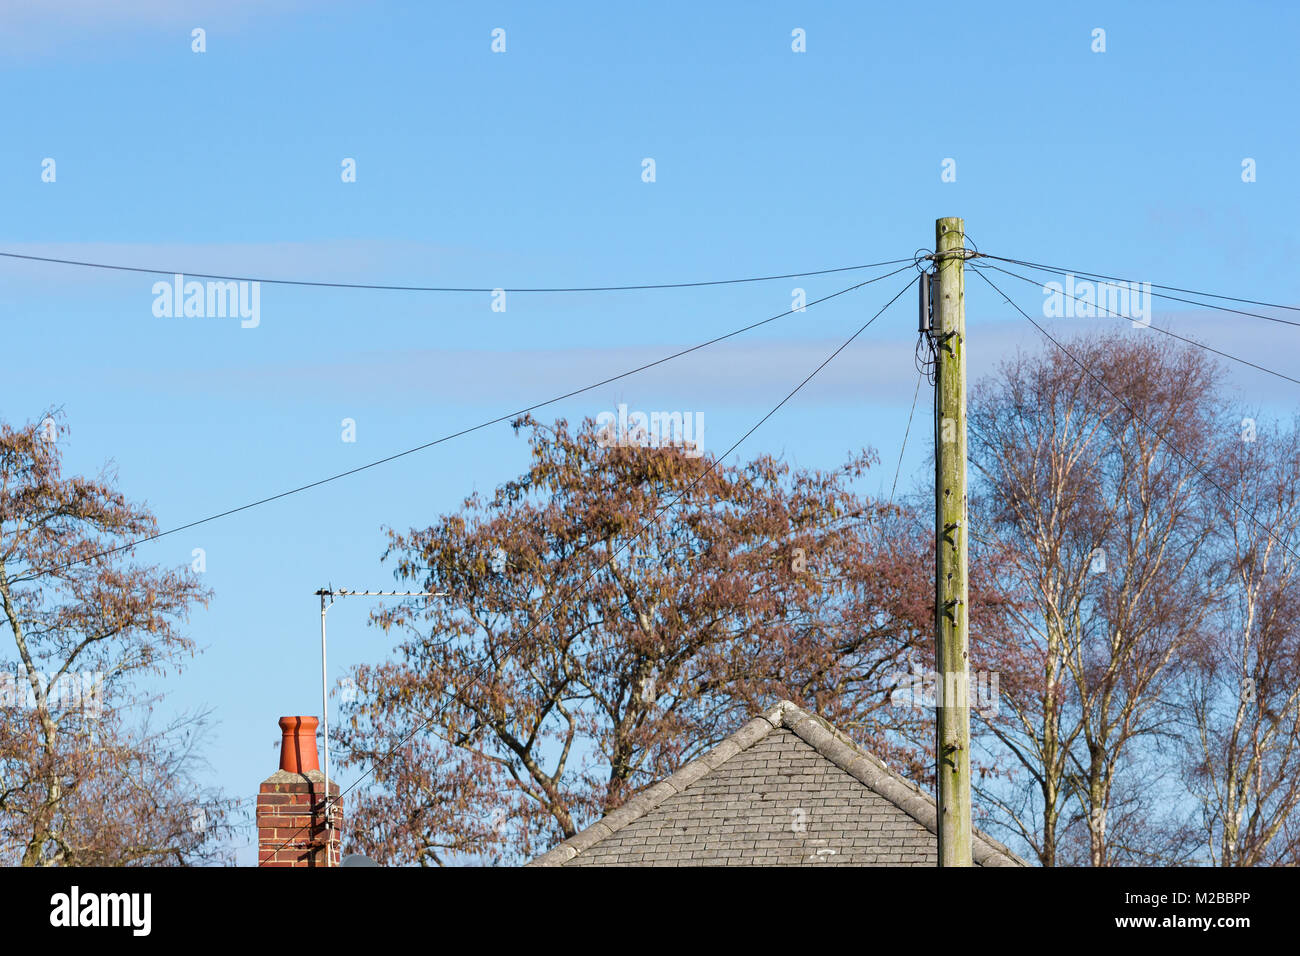 hight resolution of the top of a telephone pole with phone lines connected in a residential area united kingdom